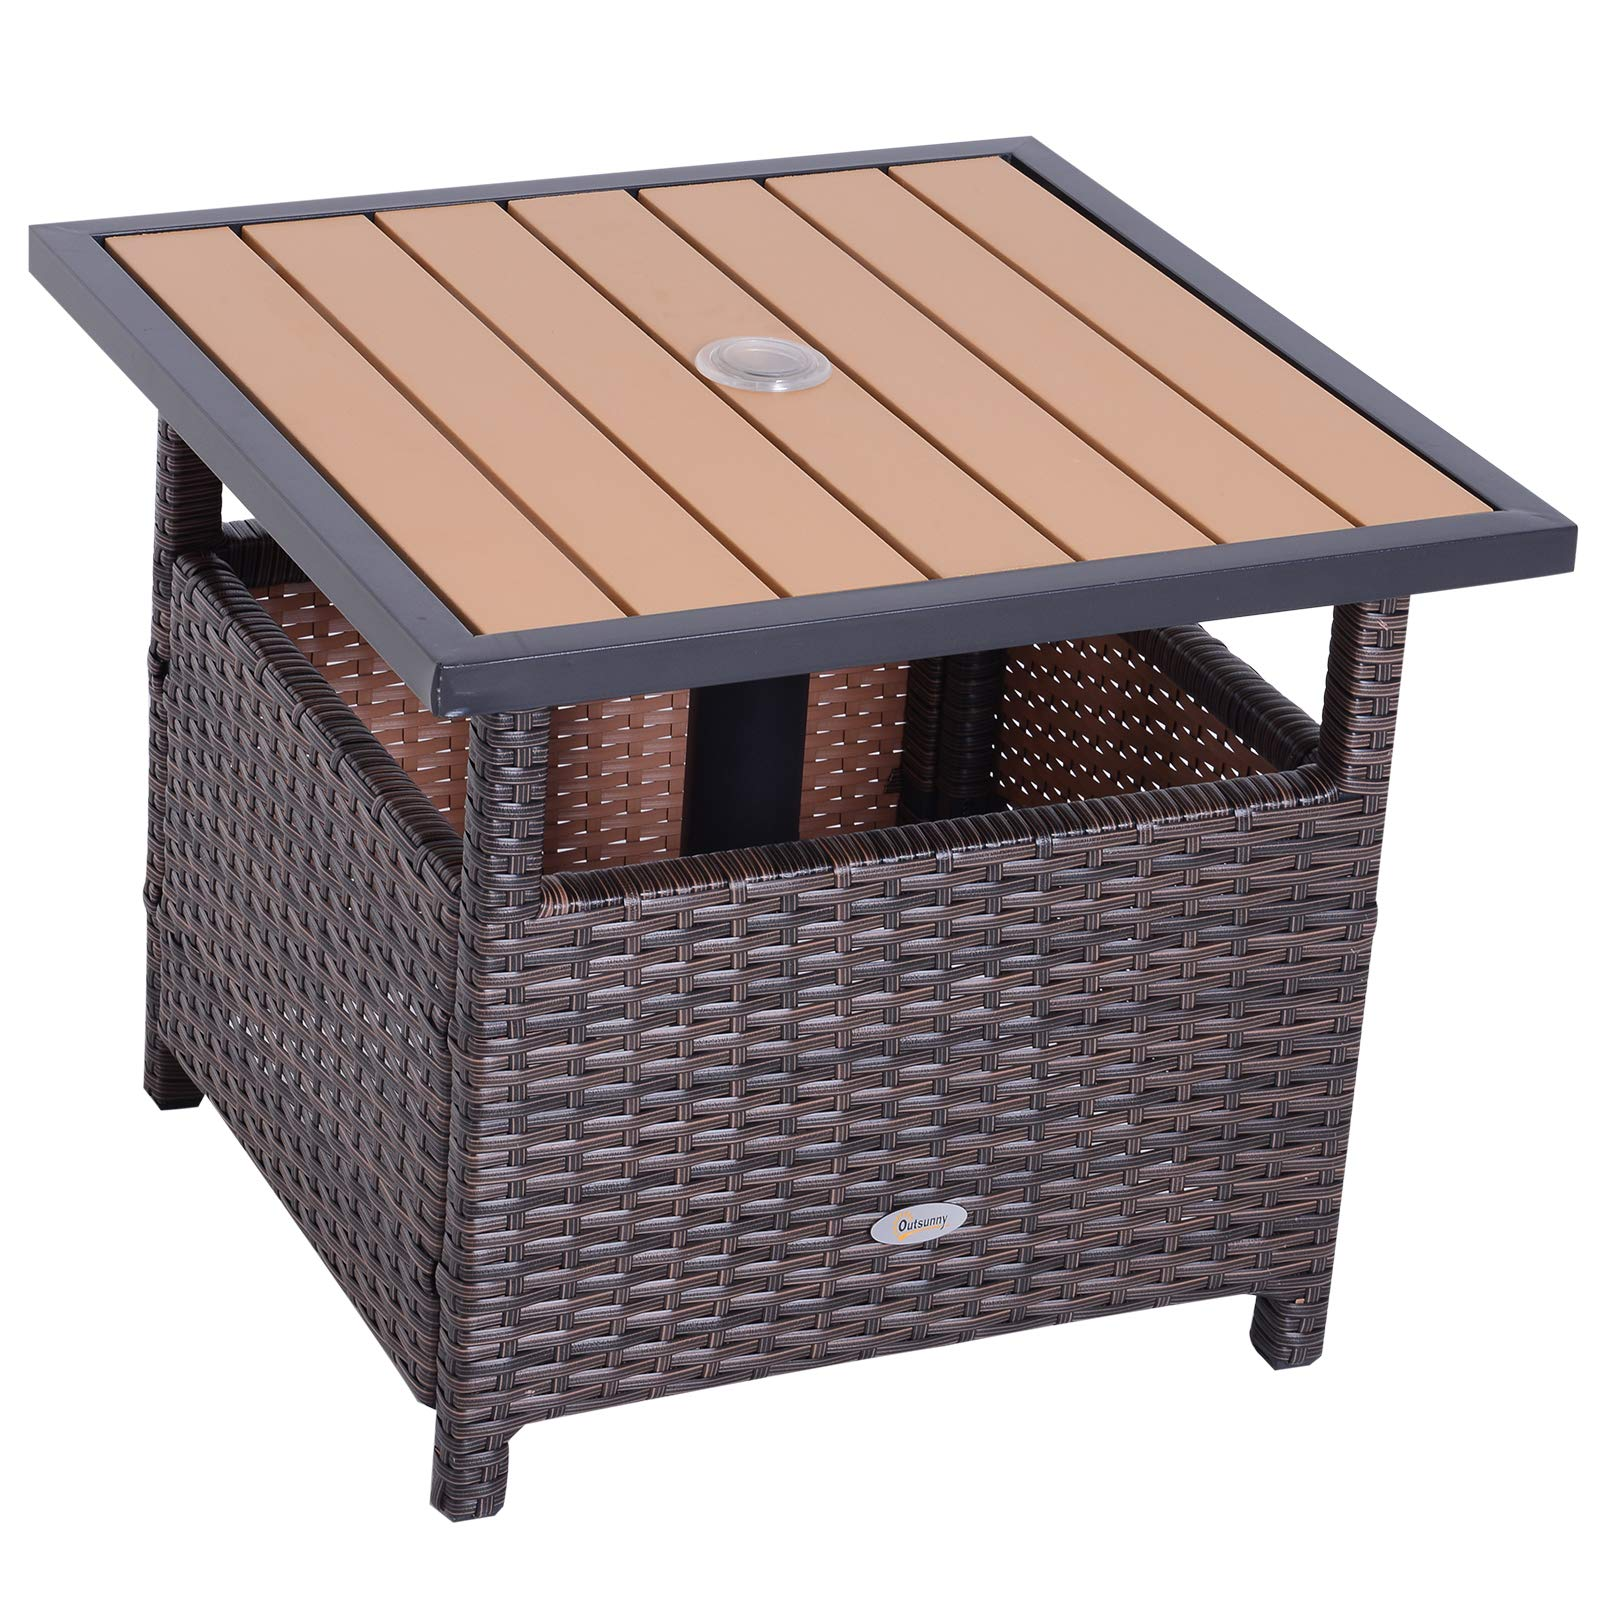 Outsunny 22'' Steel PE Rattan Wicker Outdoor Patio Accent Table with Umbrella Insert